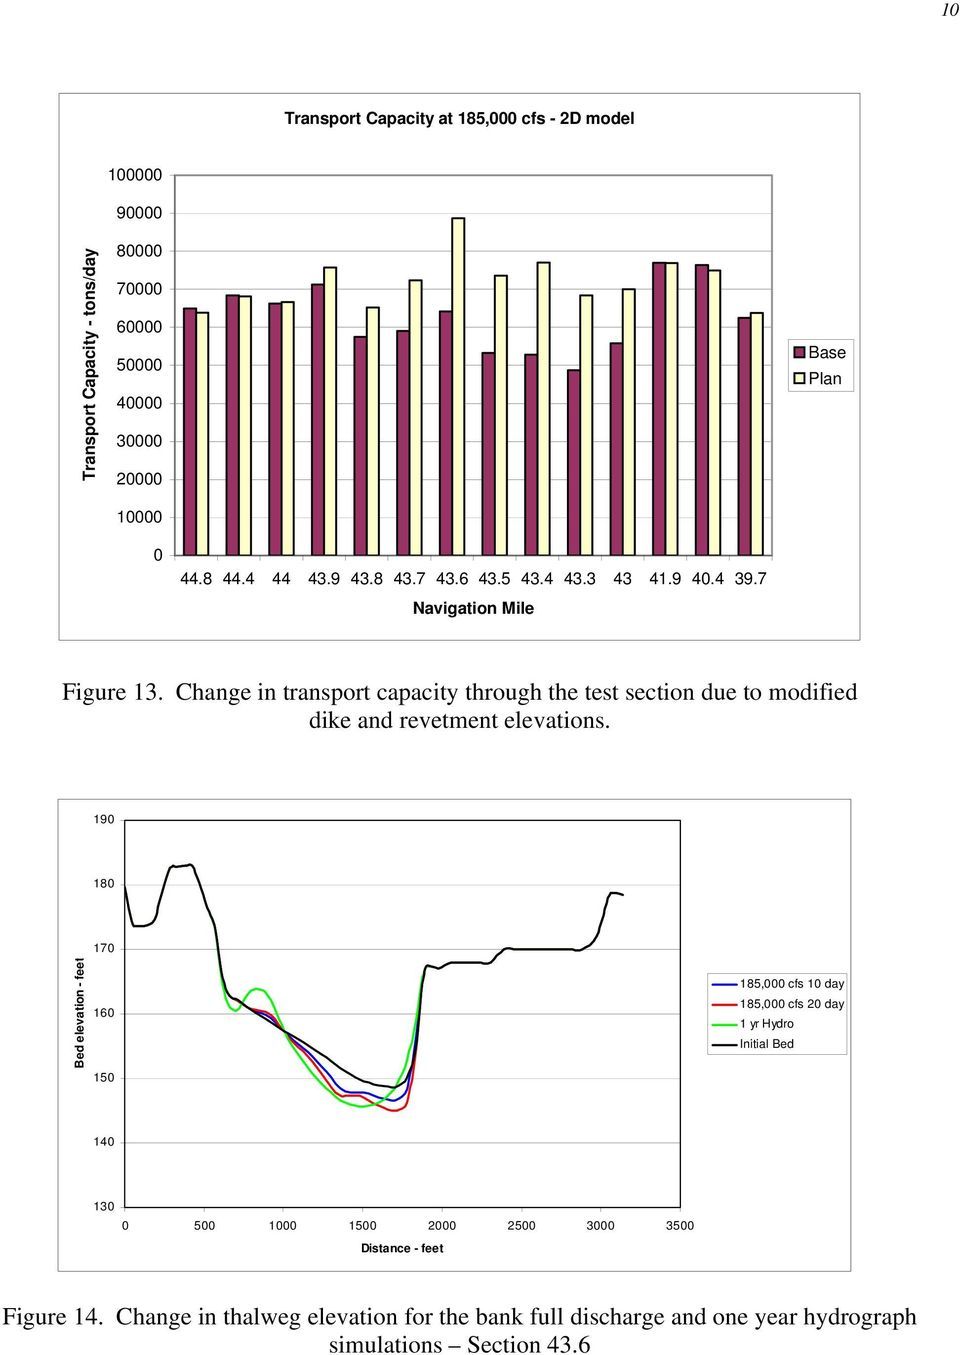 Change in transport capacity through the test section due to modified dike and revetment elevations.